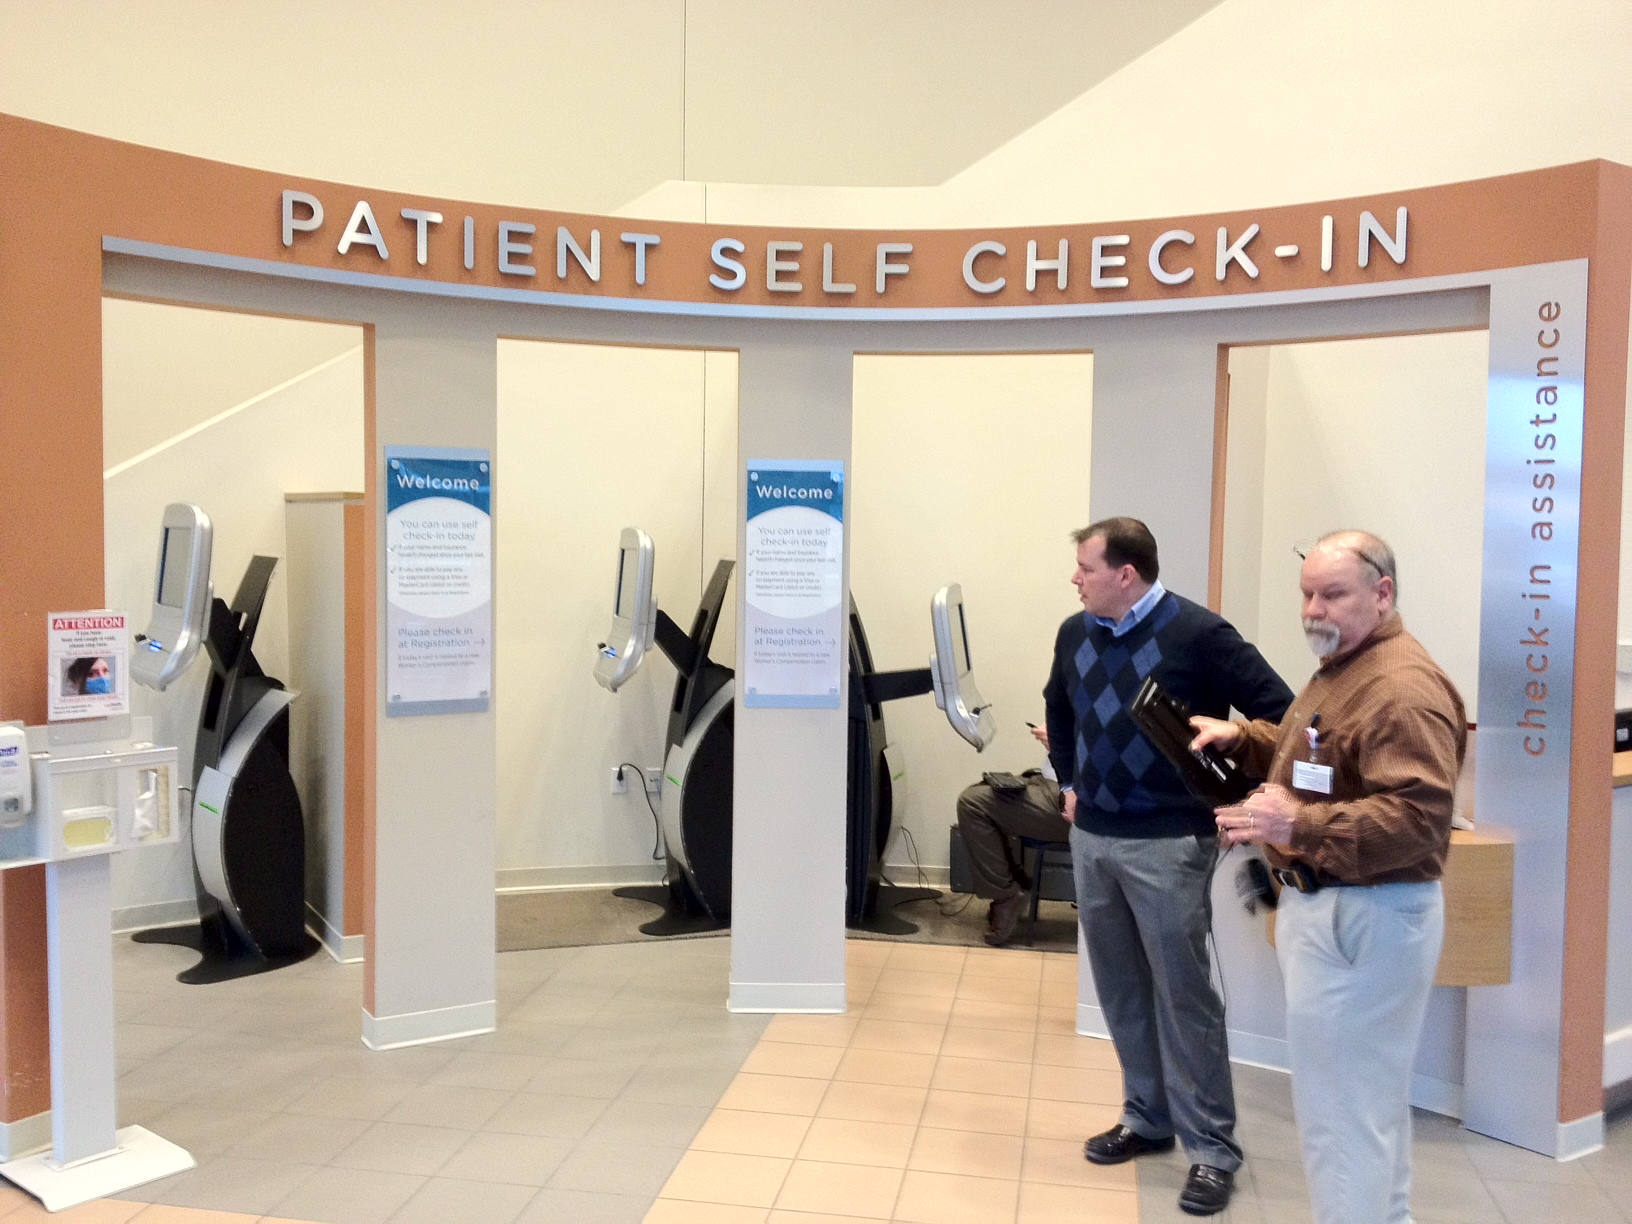 The latest patient check in kiosk deployment for Registrator health check